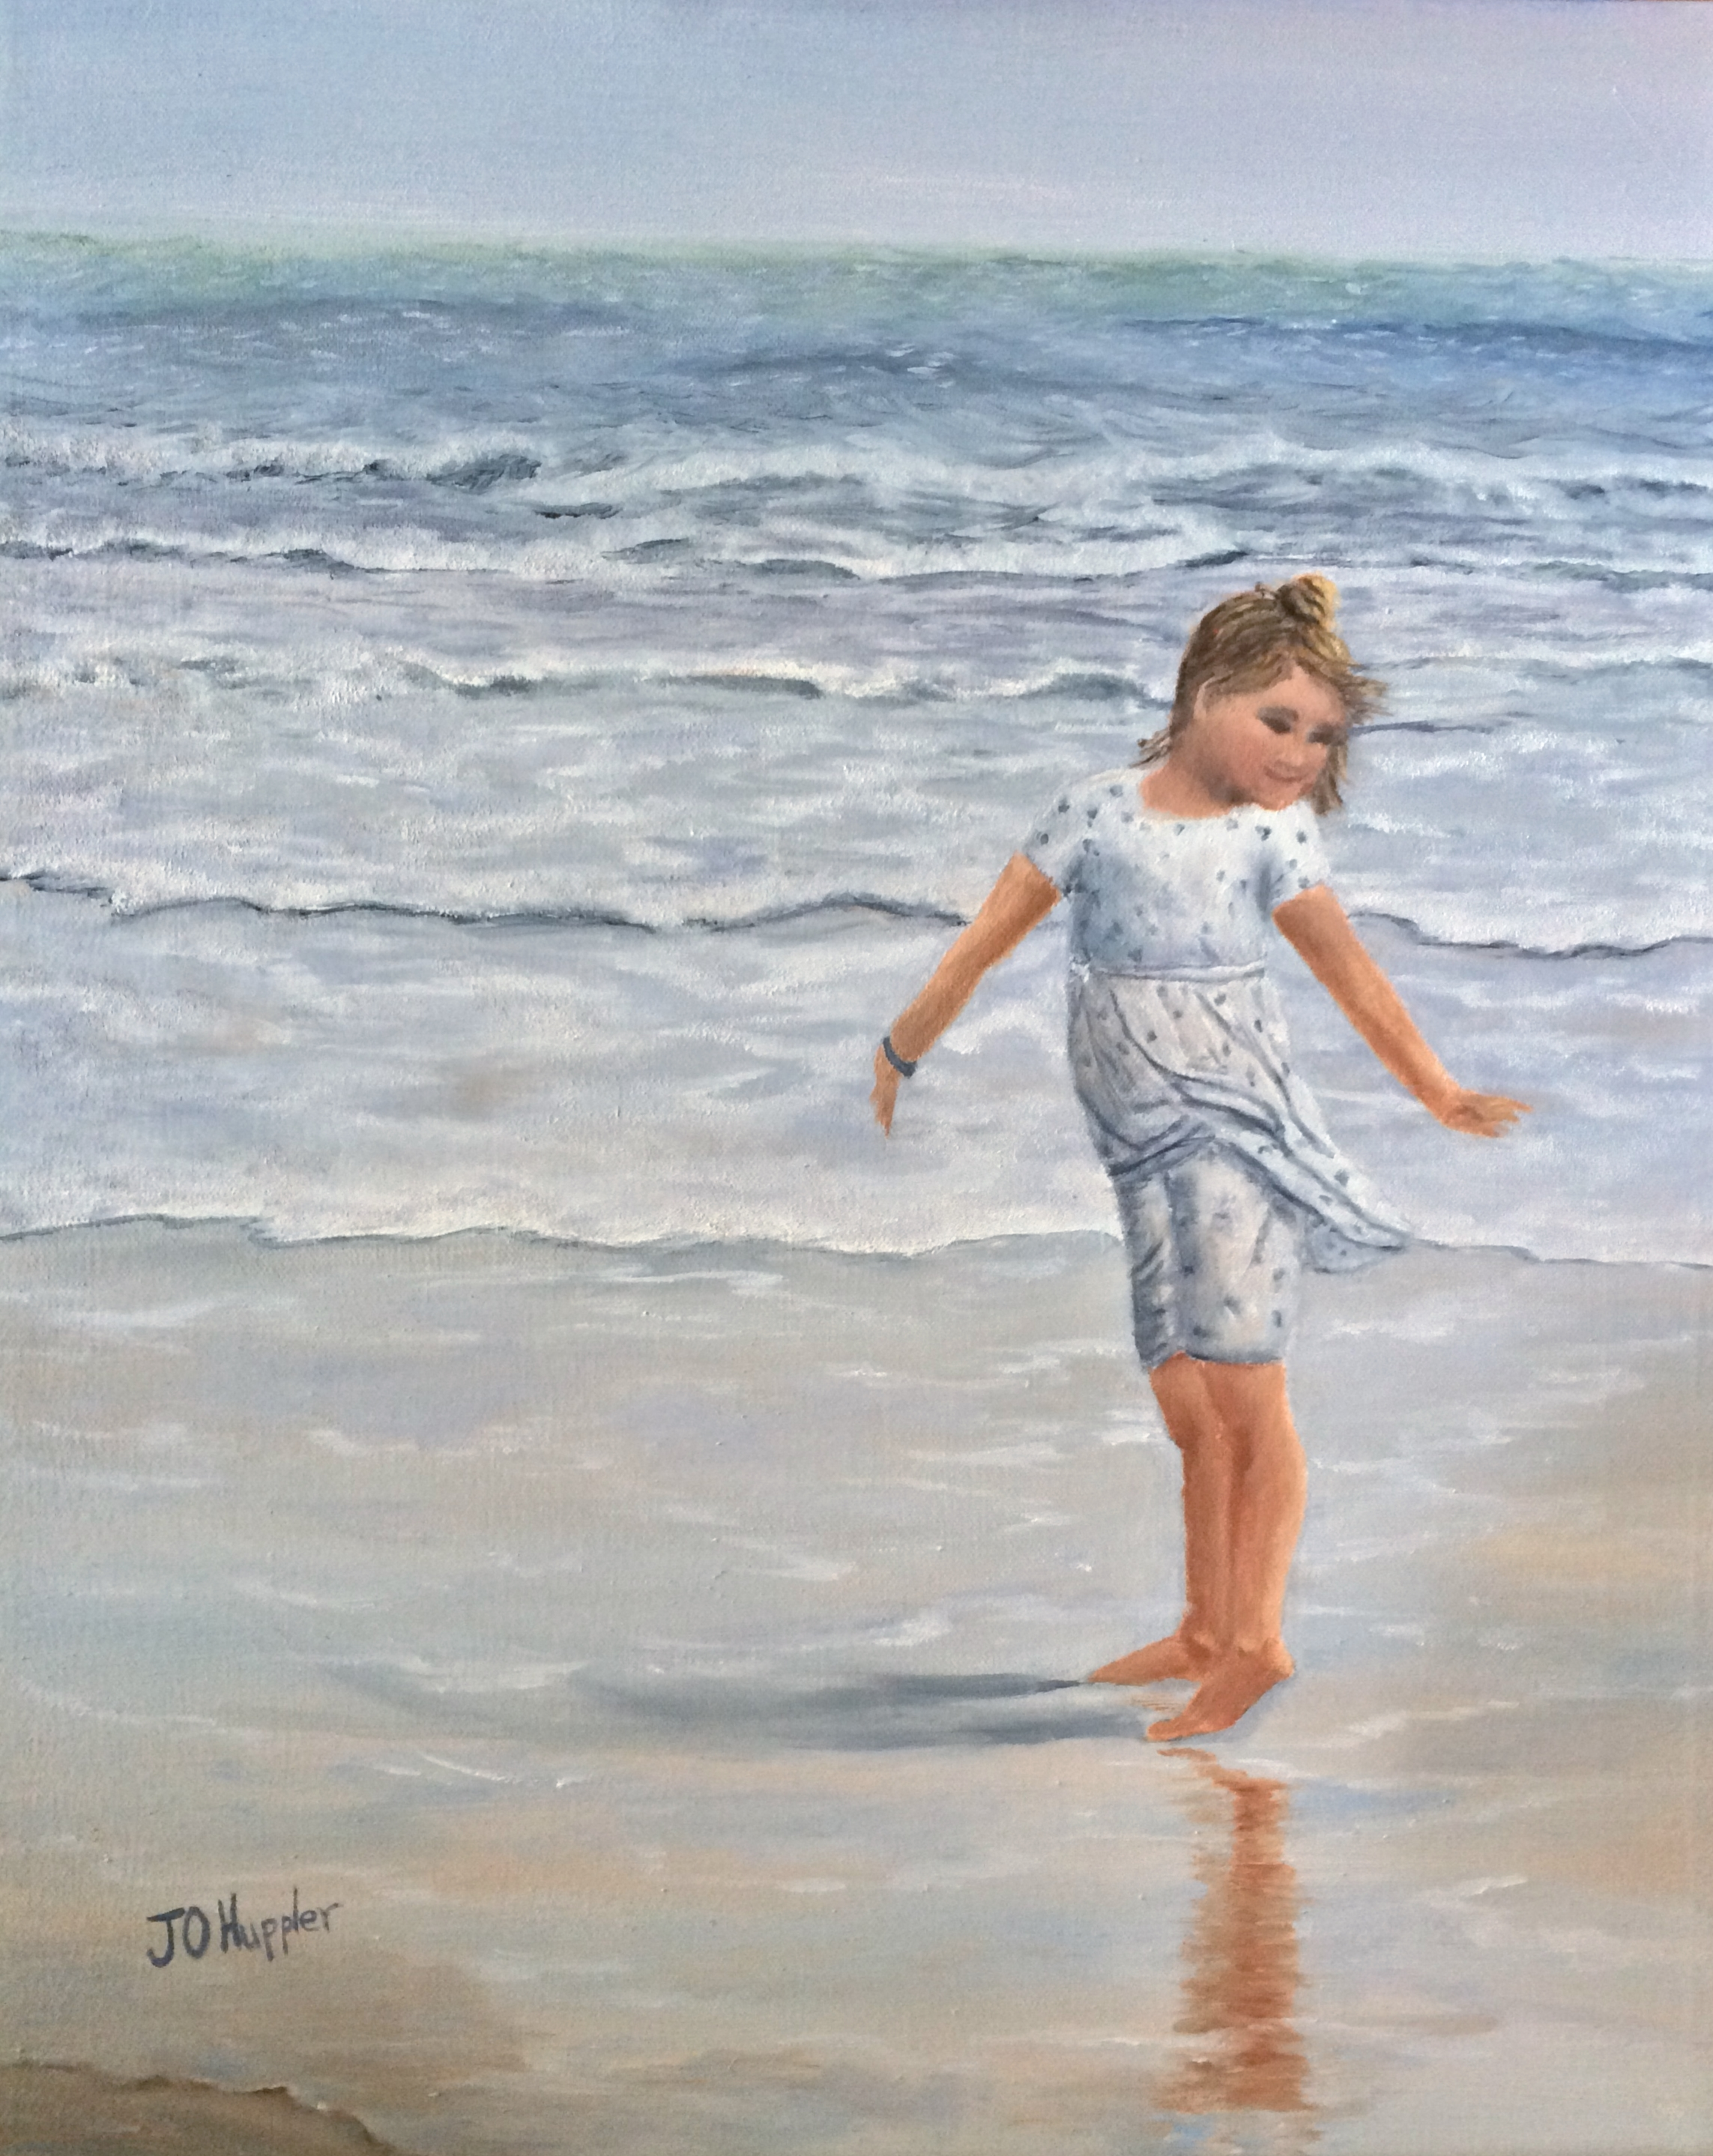 Princess Katie 20x16 Original Oil Painting On Canvas Of A Little Girl Dancing